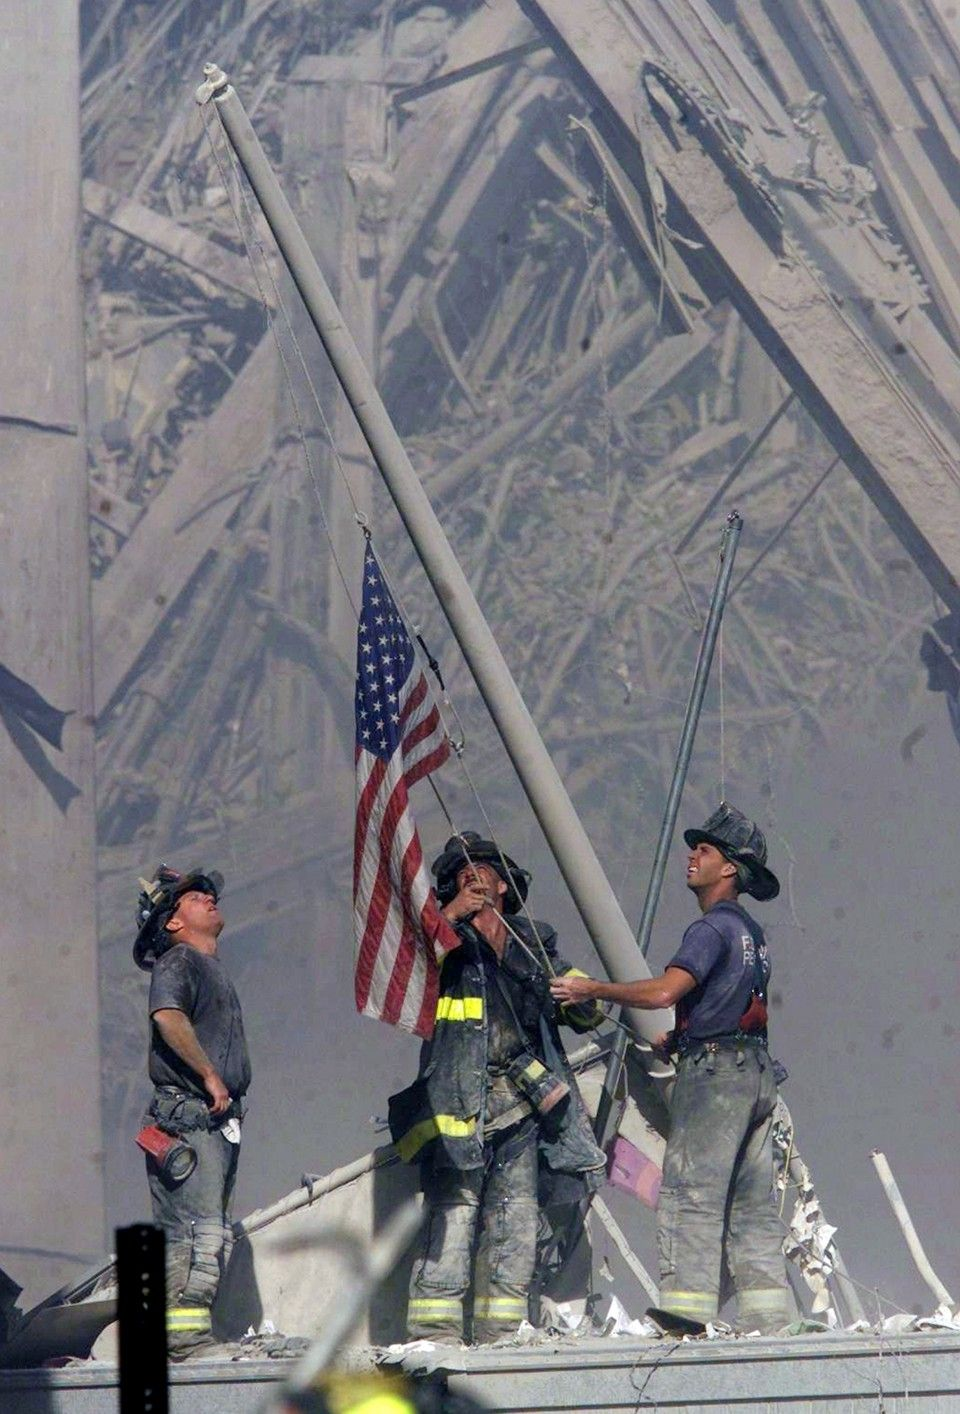 The Iconic 9 11 Flag That Disappeared 15 Years Ago Has Been Found Nearly 3 000 Miles Away Powerful Pictures American History Iconic Photos